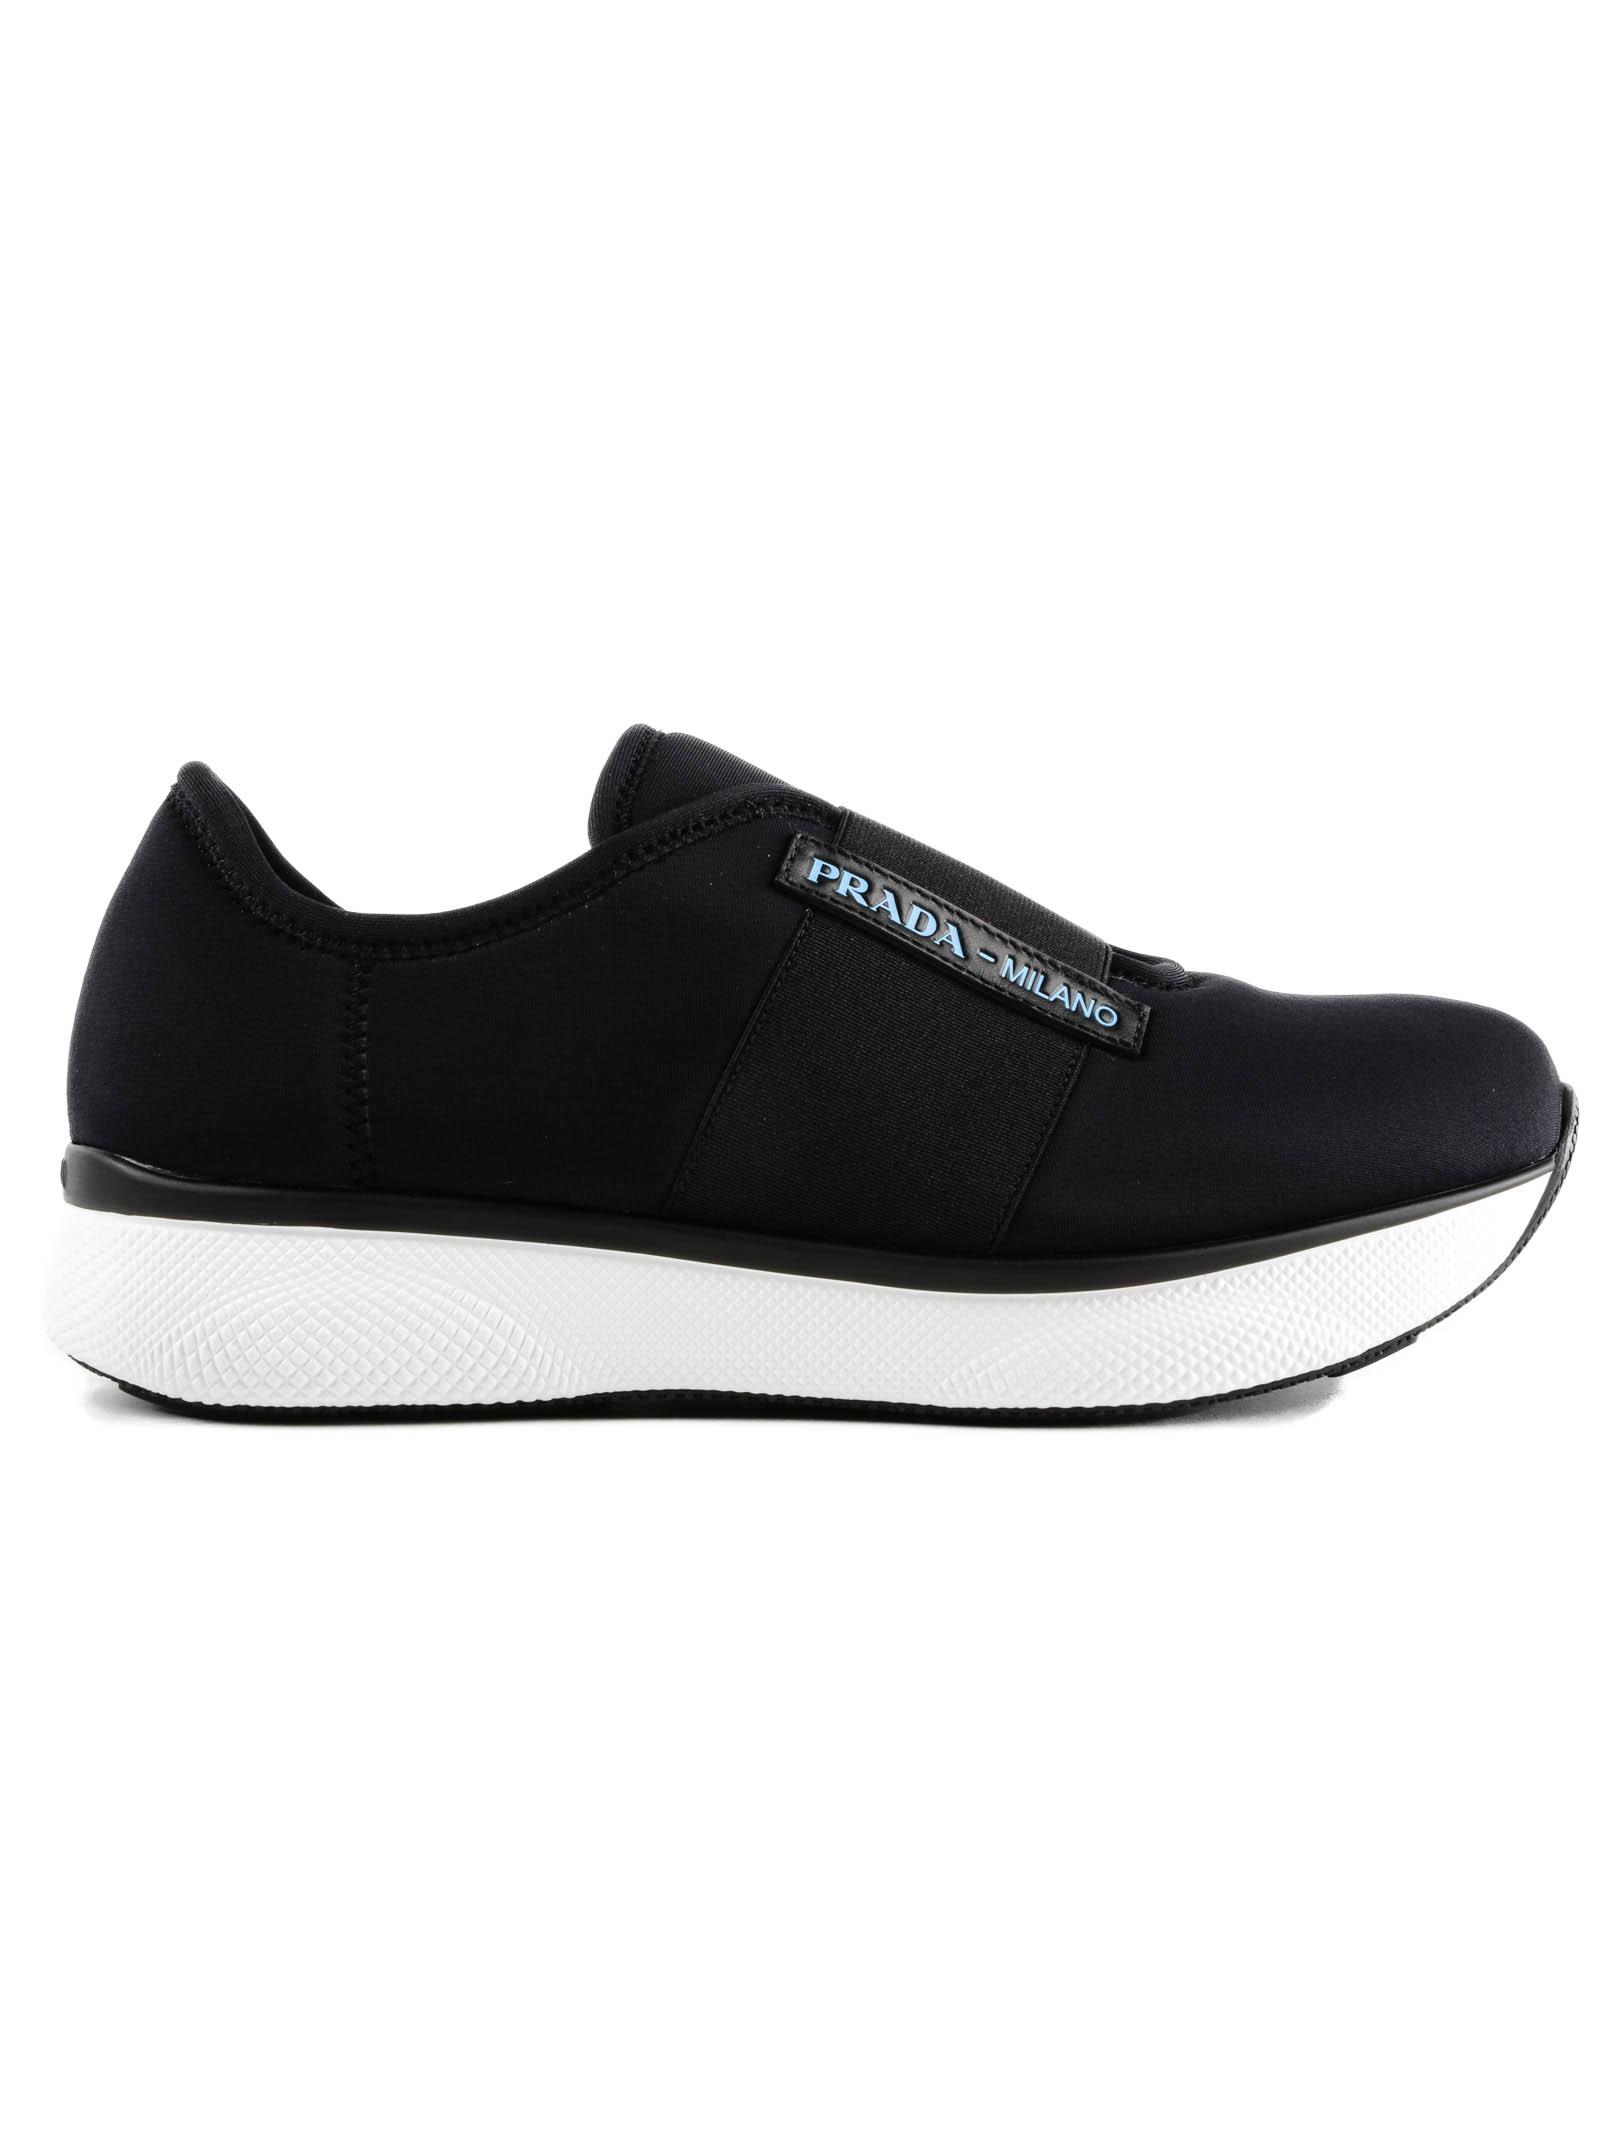 black Move neoprene sneakers Prada 8HcgKZz